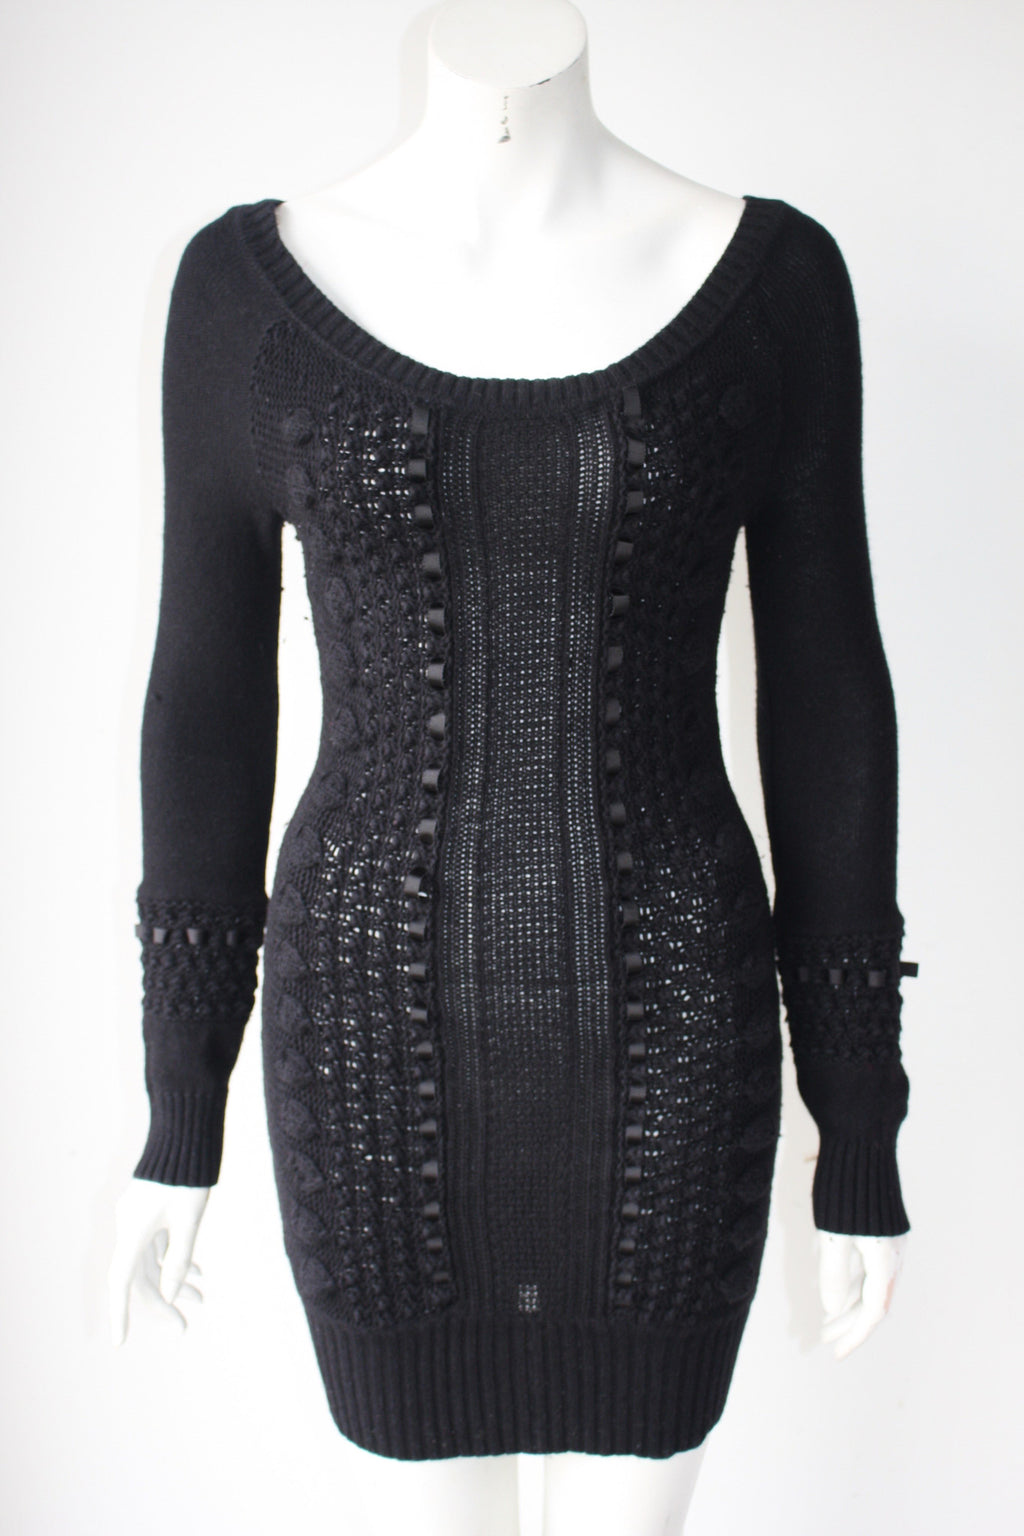 Guess By Marciano Black Long Sleeve Sweater Dress - Joyce's Closet  - 1